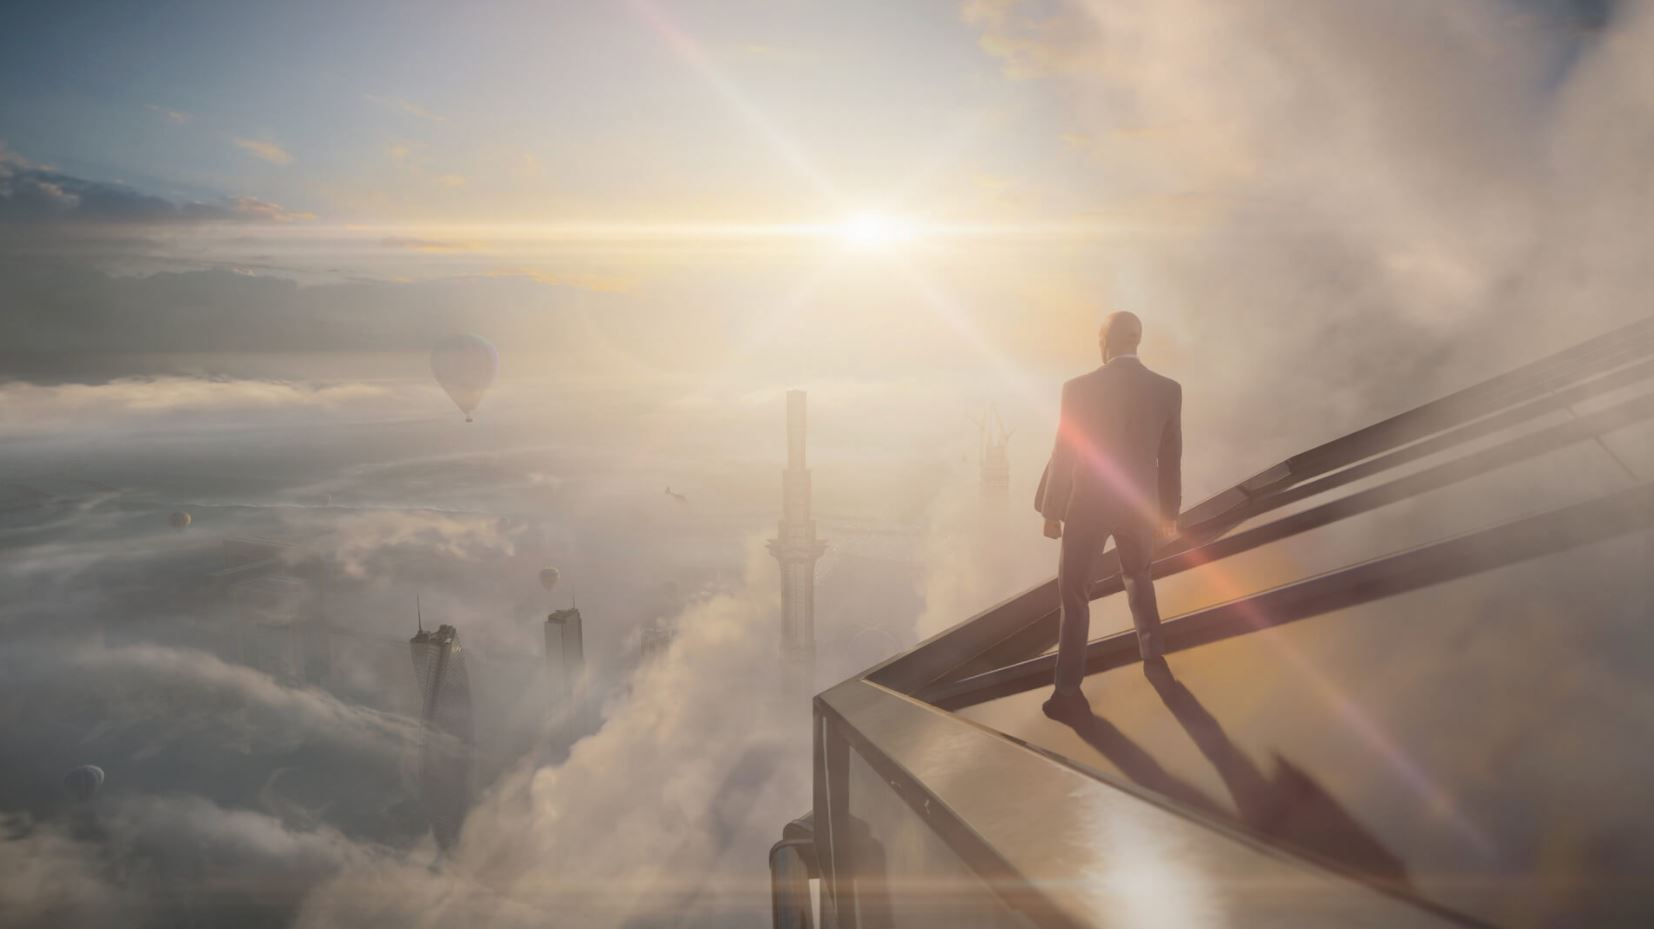 hitman-3-review-ps5-the-ultimate-version-of-hitman-and-a-confident-showcase-of-the-ps5s-power-1